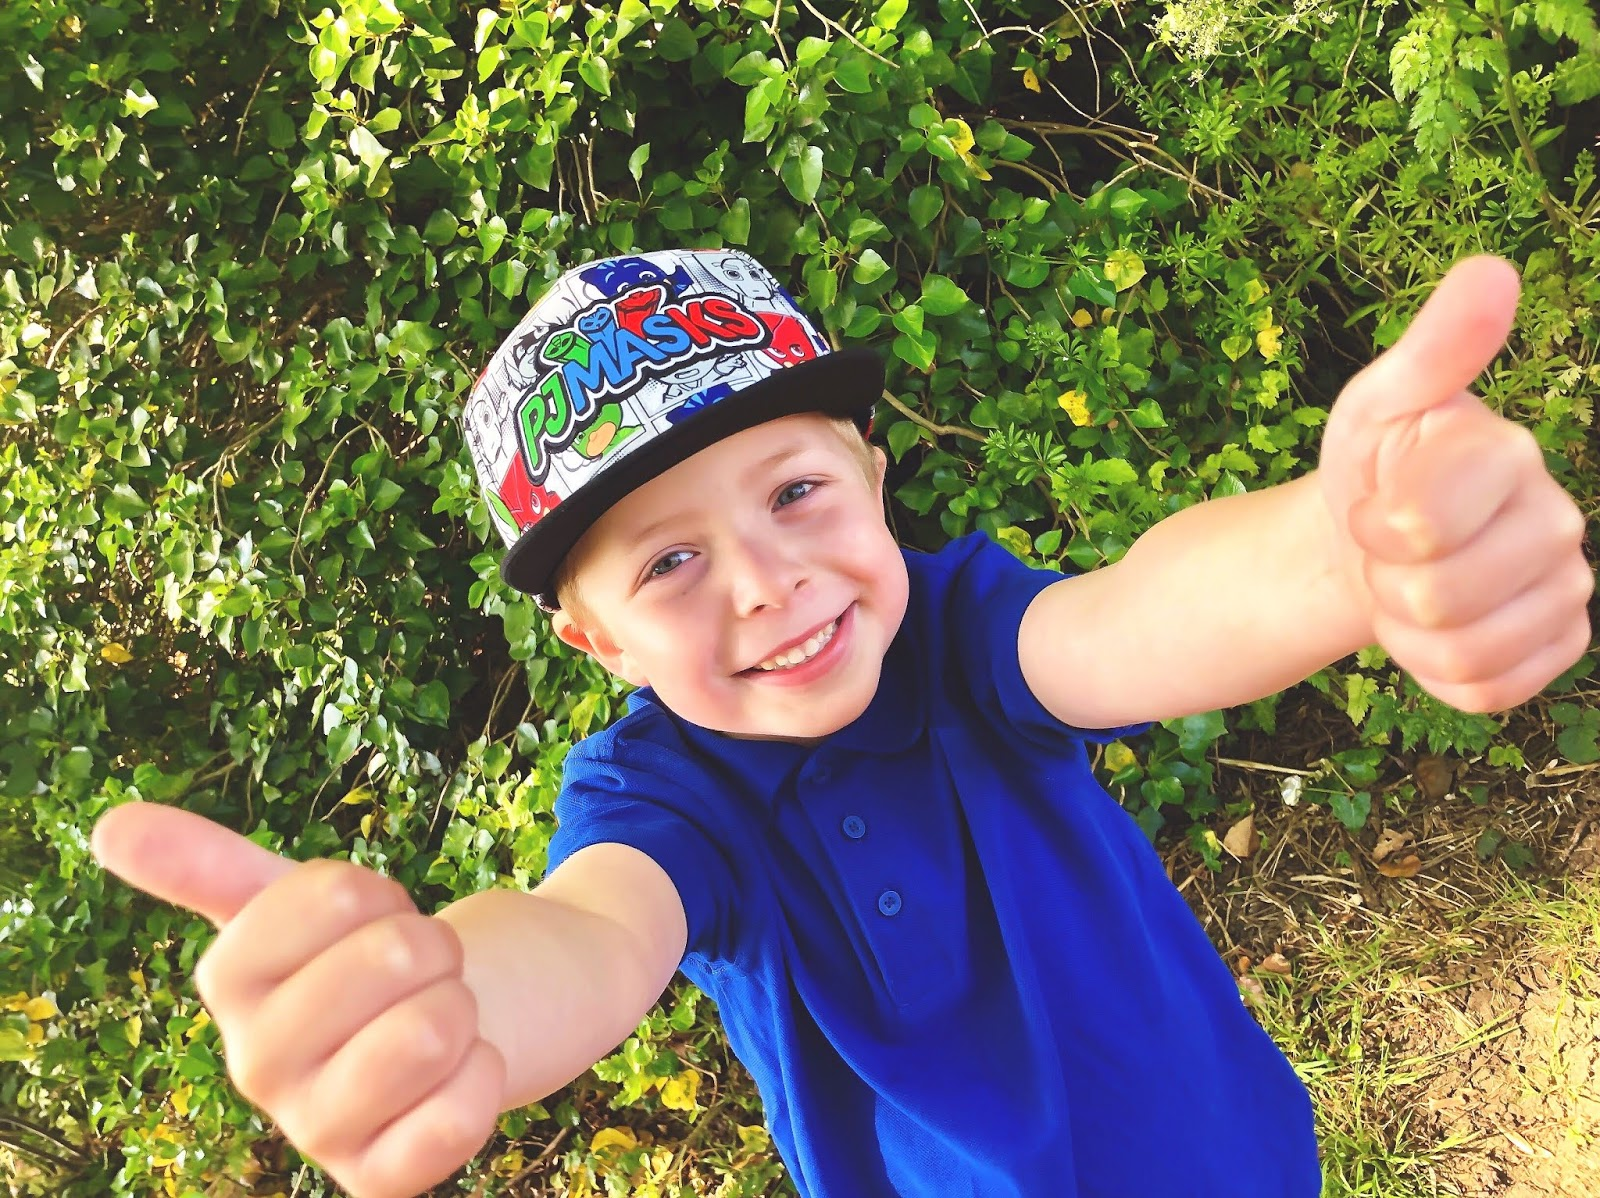 5 year old school boy in blue polo shirt and baseball cap, smiling and giving a thumbs up